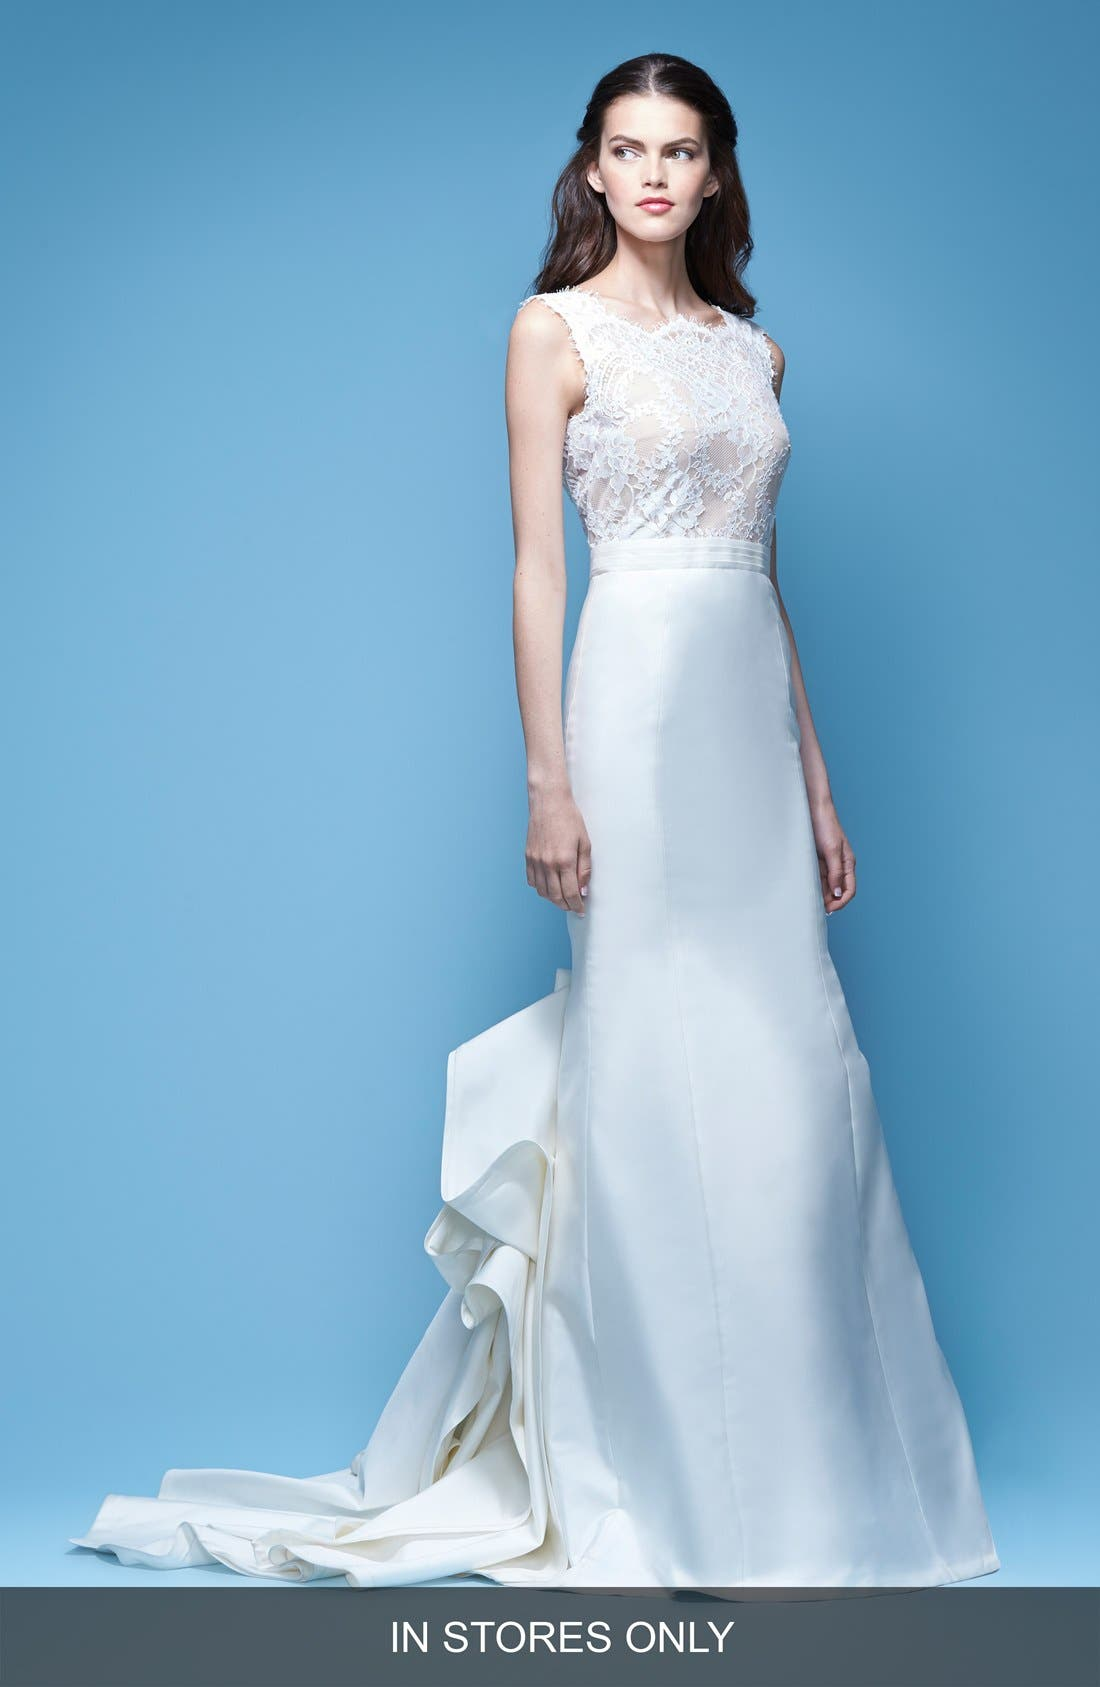 Fantastic Thelma Madine Wedding Dresses Crest - All Wedding Dresses ...